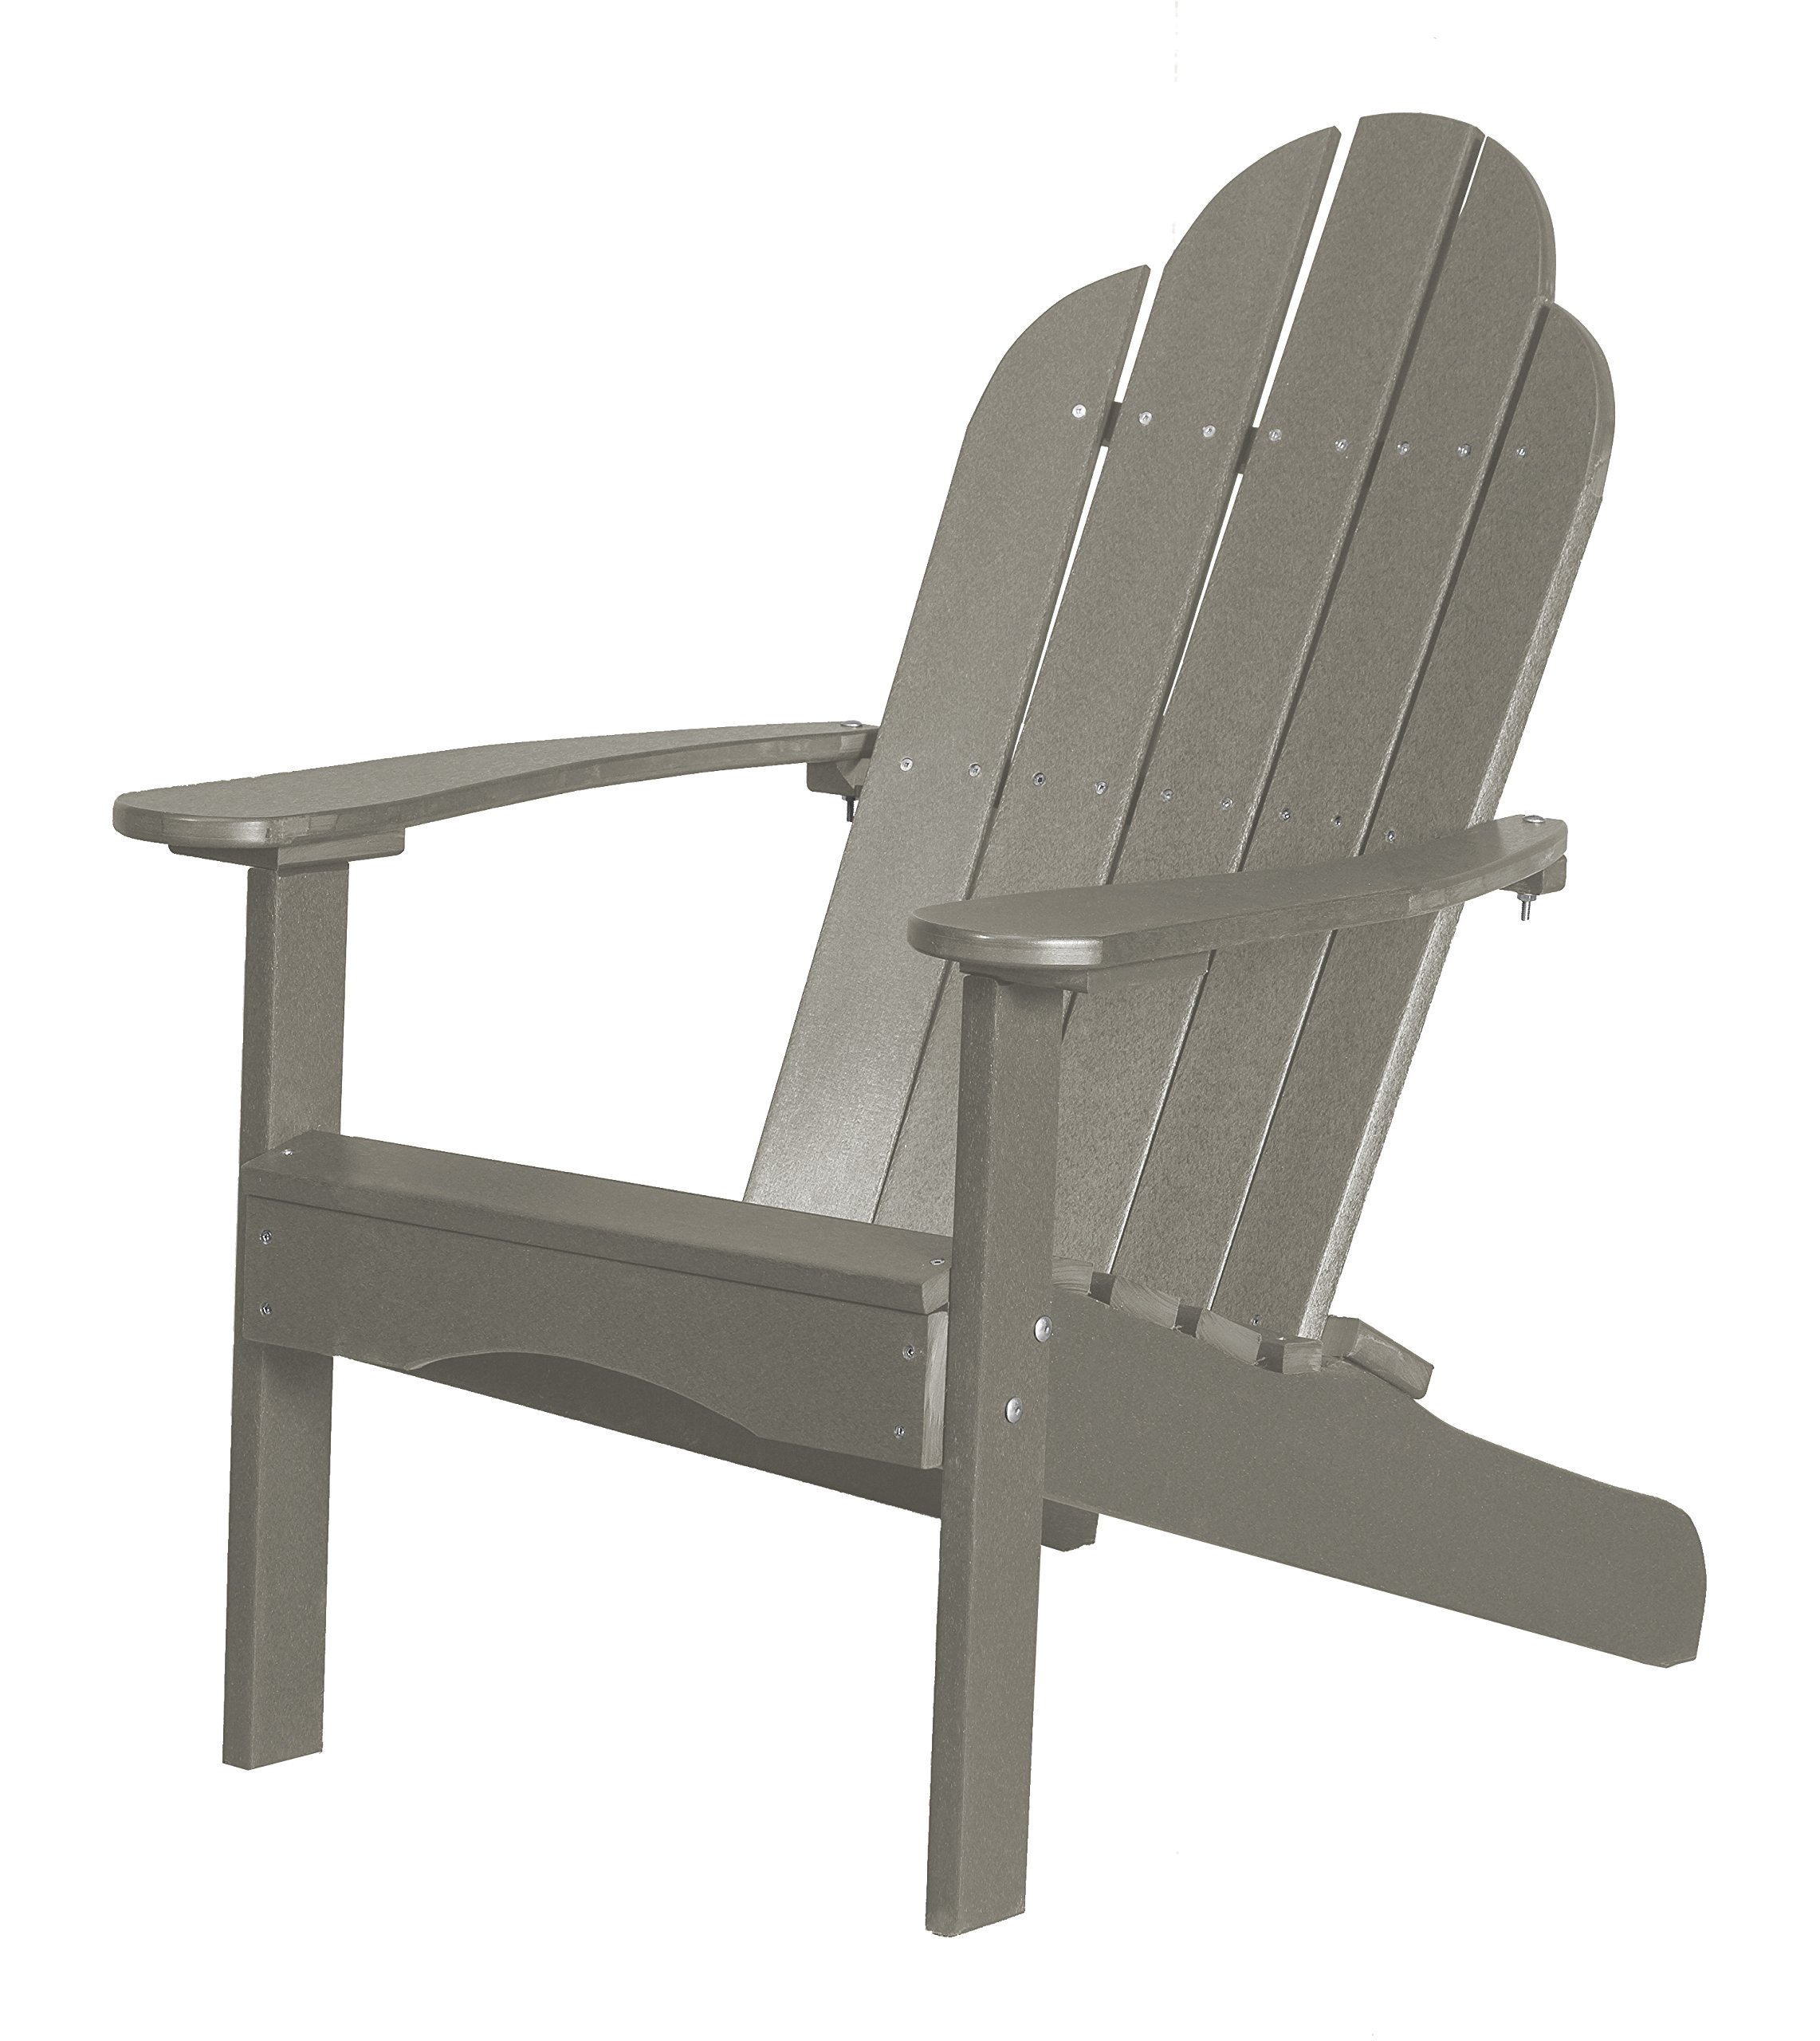 Little Cottage Company Lcc-214 Classic Adirondack Chair, Light Gray